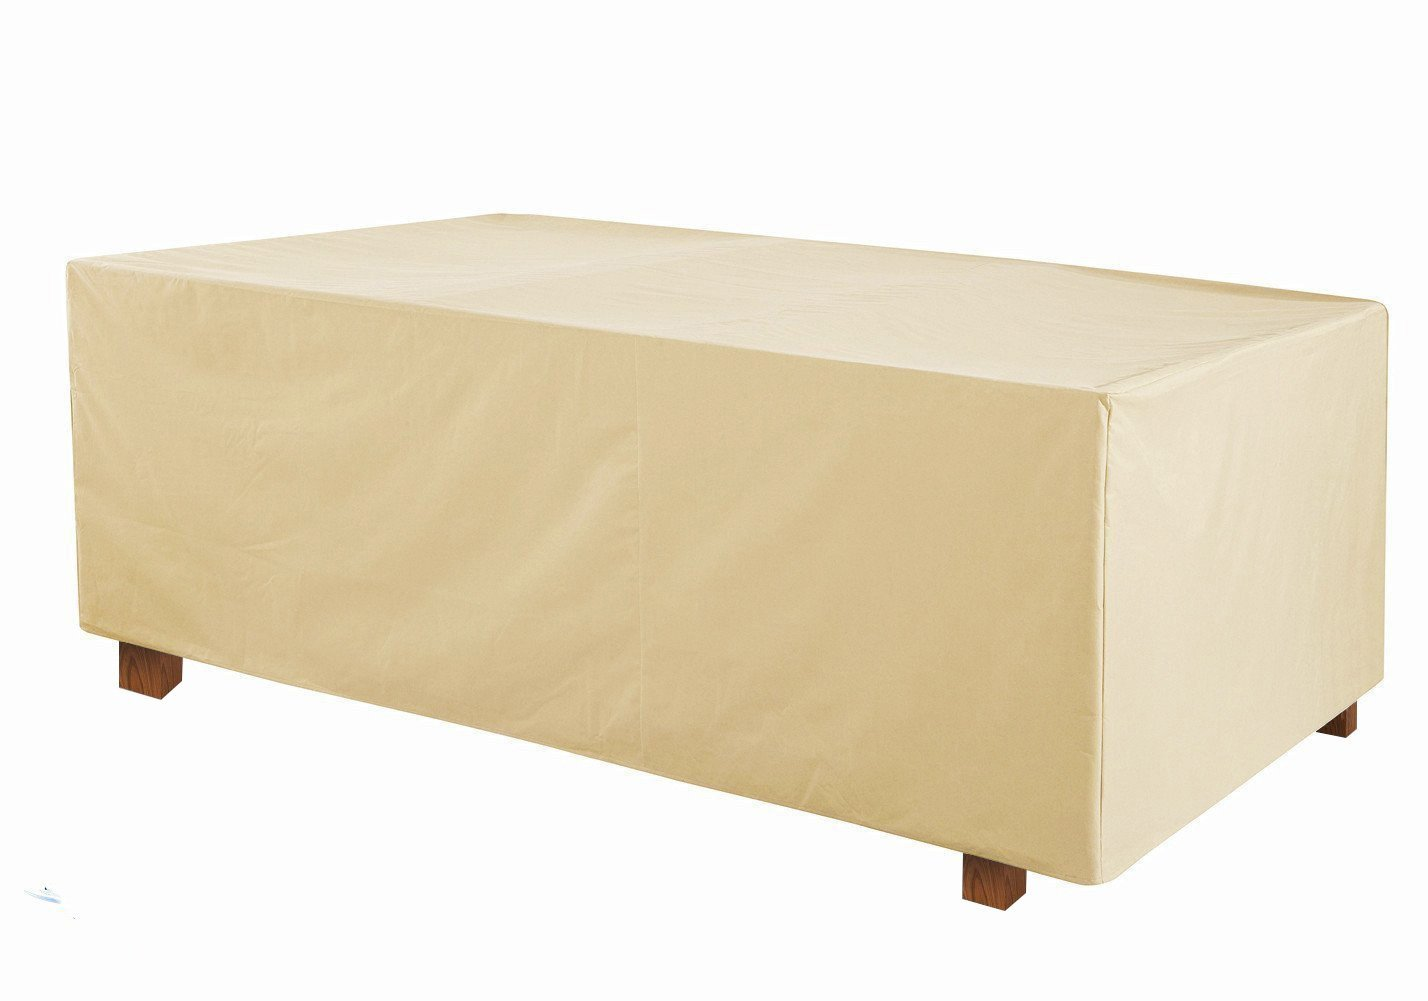 Grand Patio Deluxe Rectangular Patio Table Cover, Weather-Resistant Patio Table and Chair Covers, Waterproof and Durable Patio Dining Set Cover, Medium Size, Beige